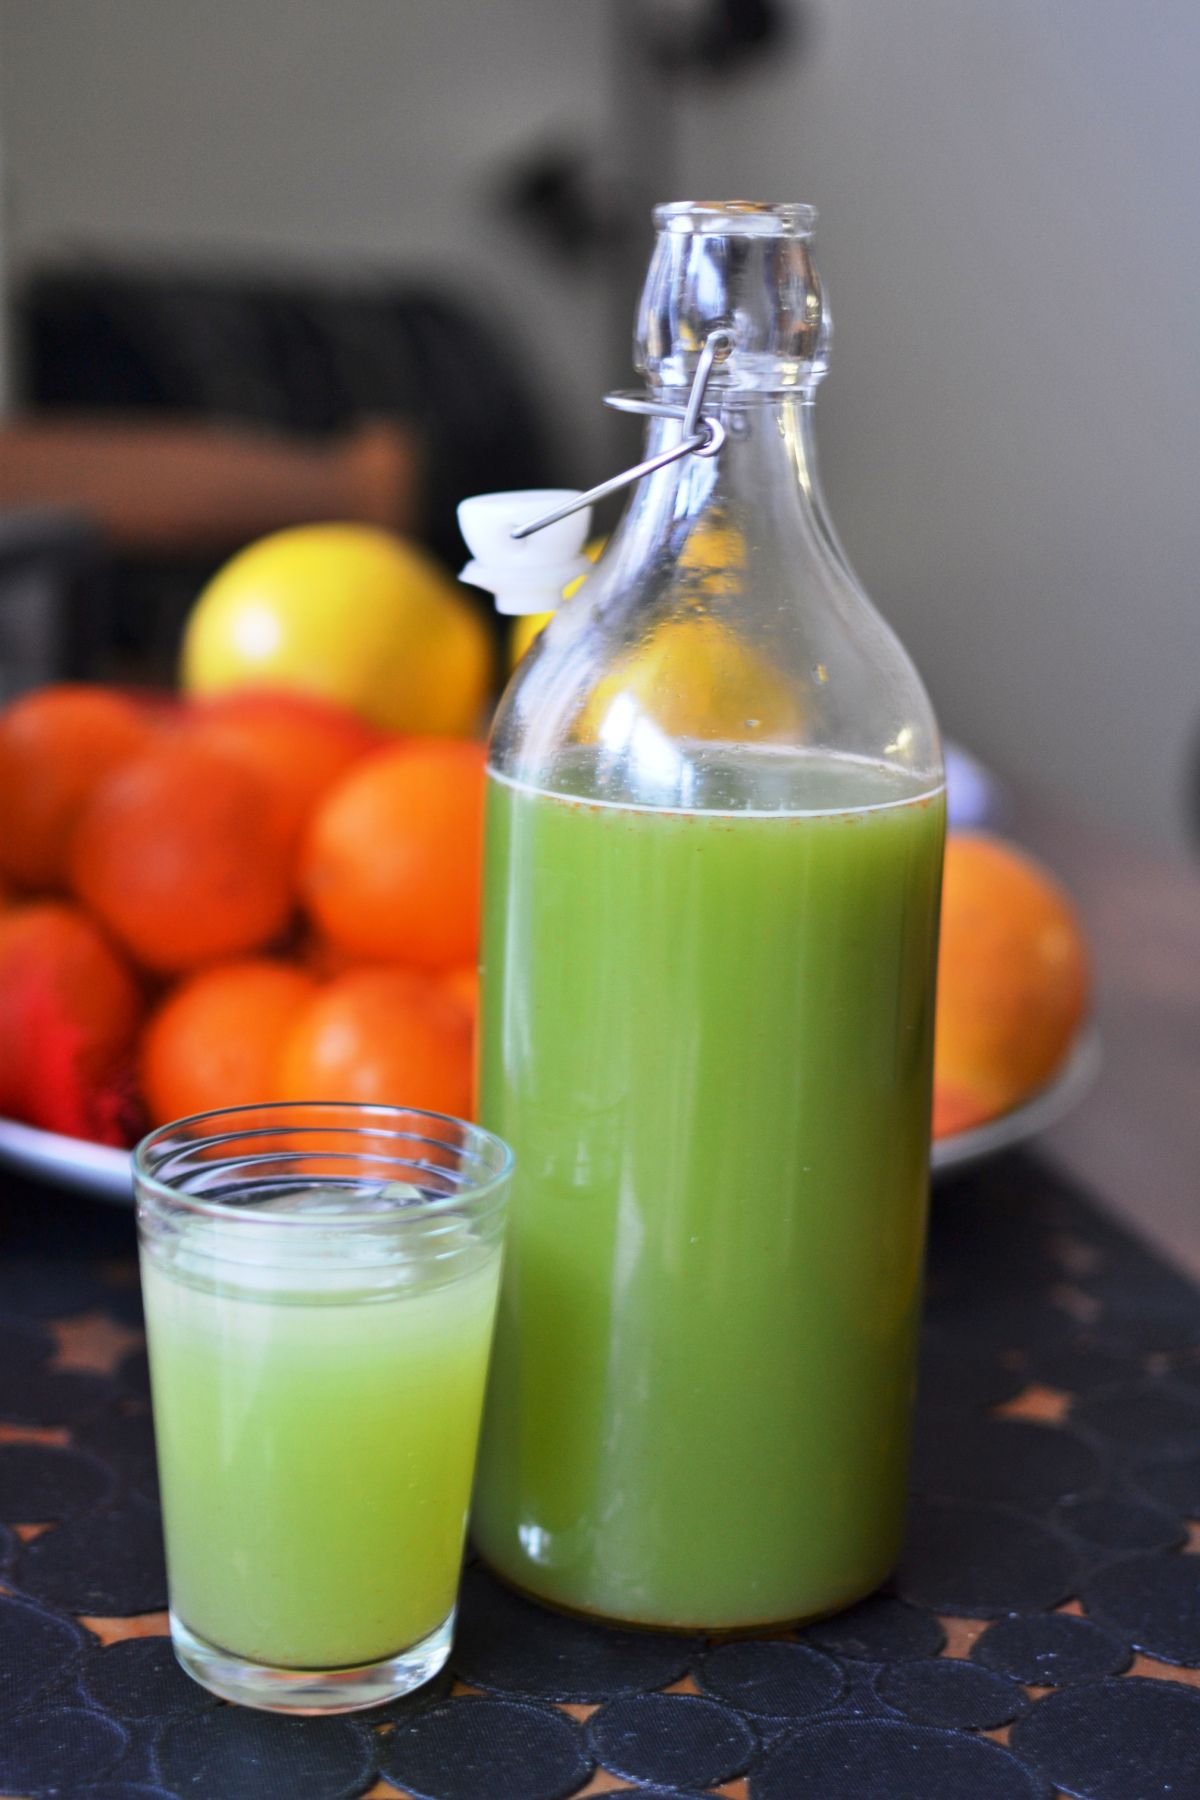 My-Ass-Must-Squat-Month: pineapple-cucumber-chile agua fresca ...